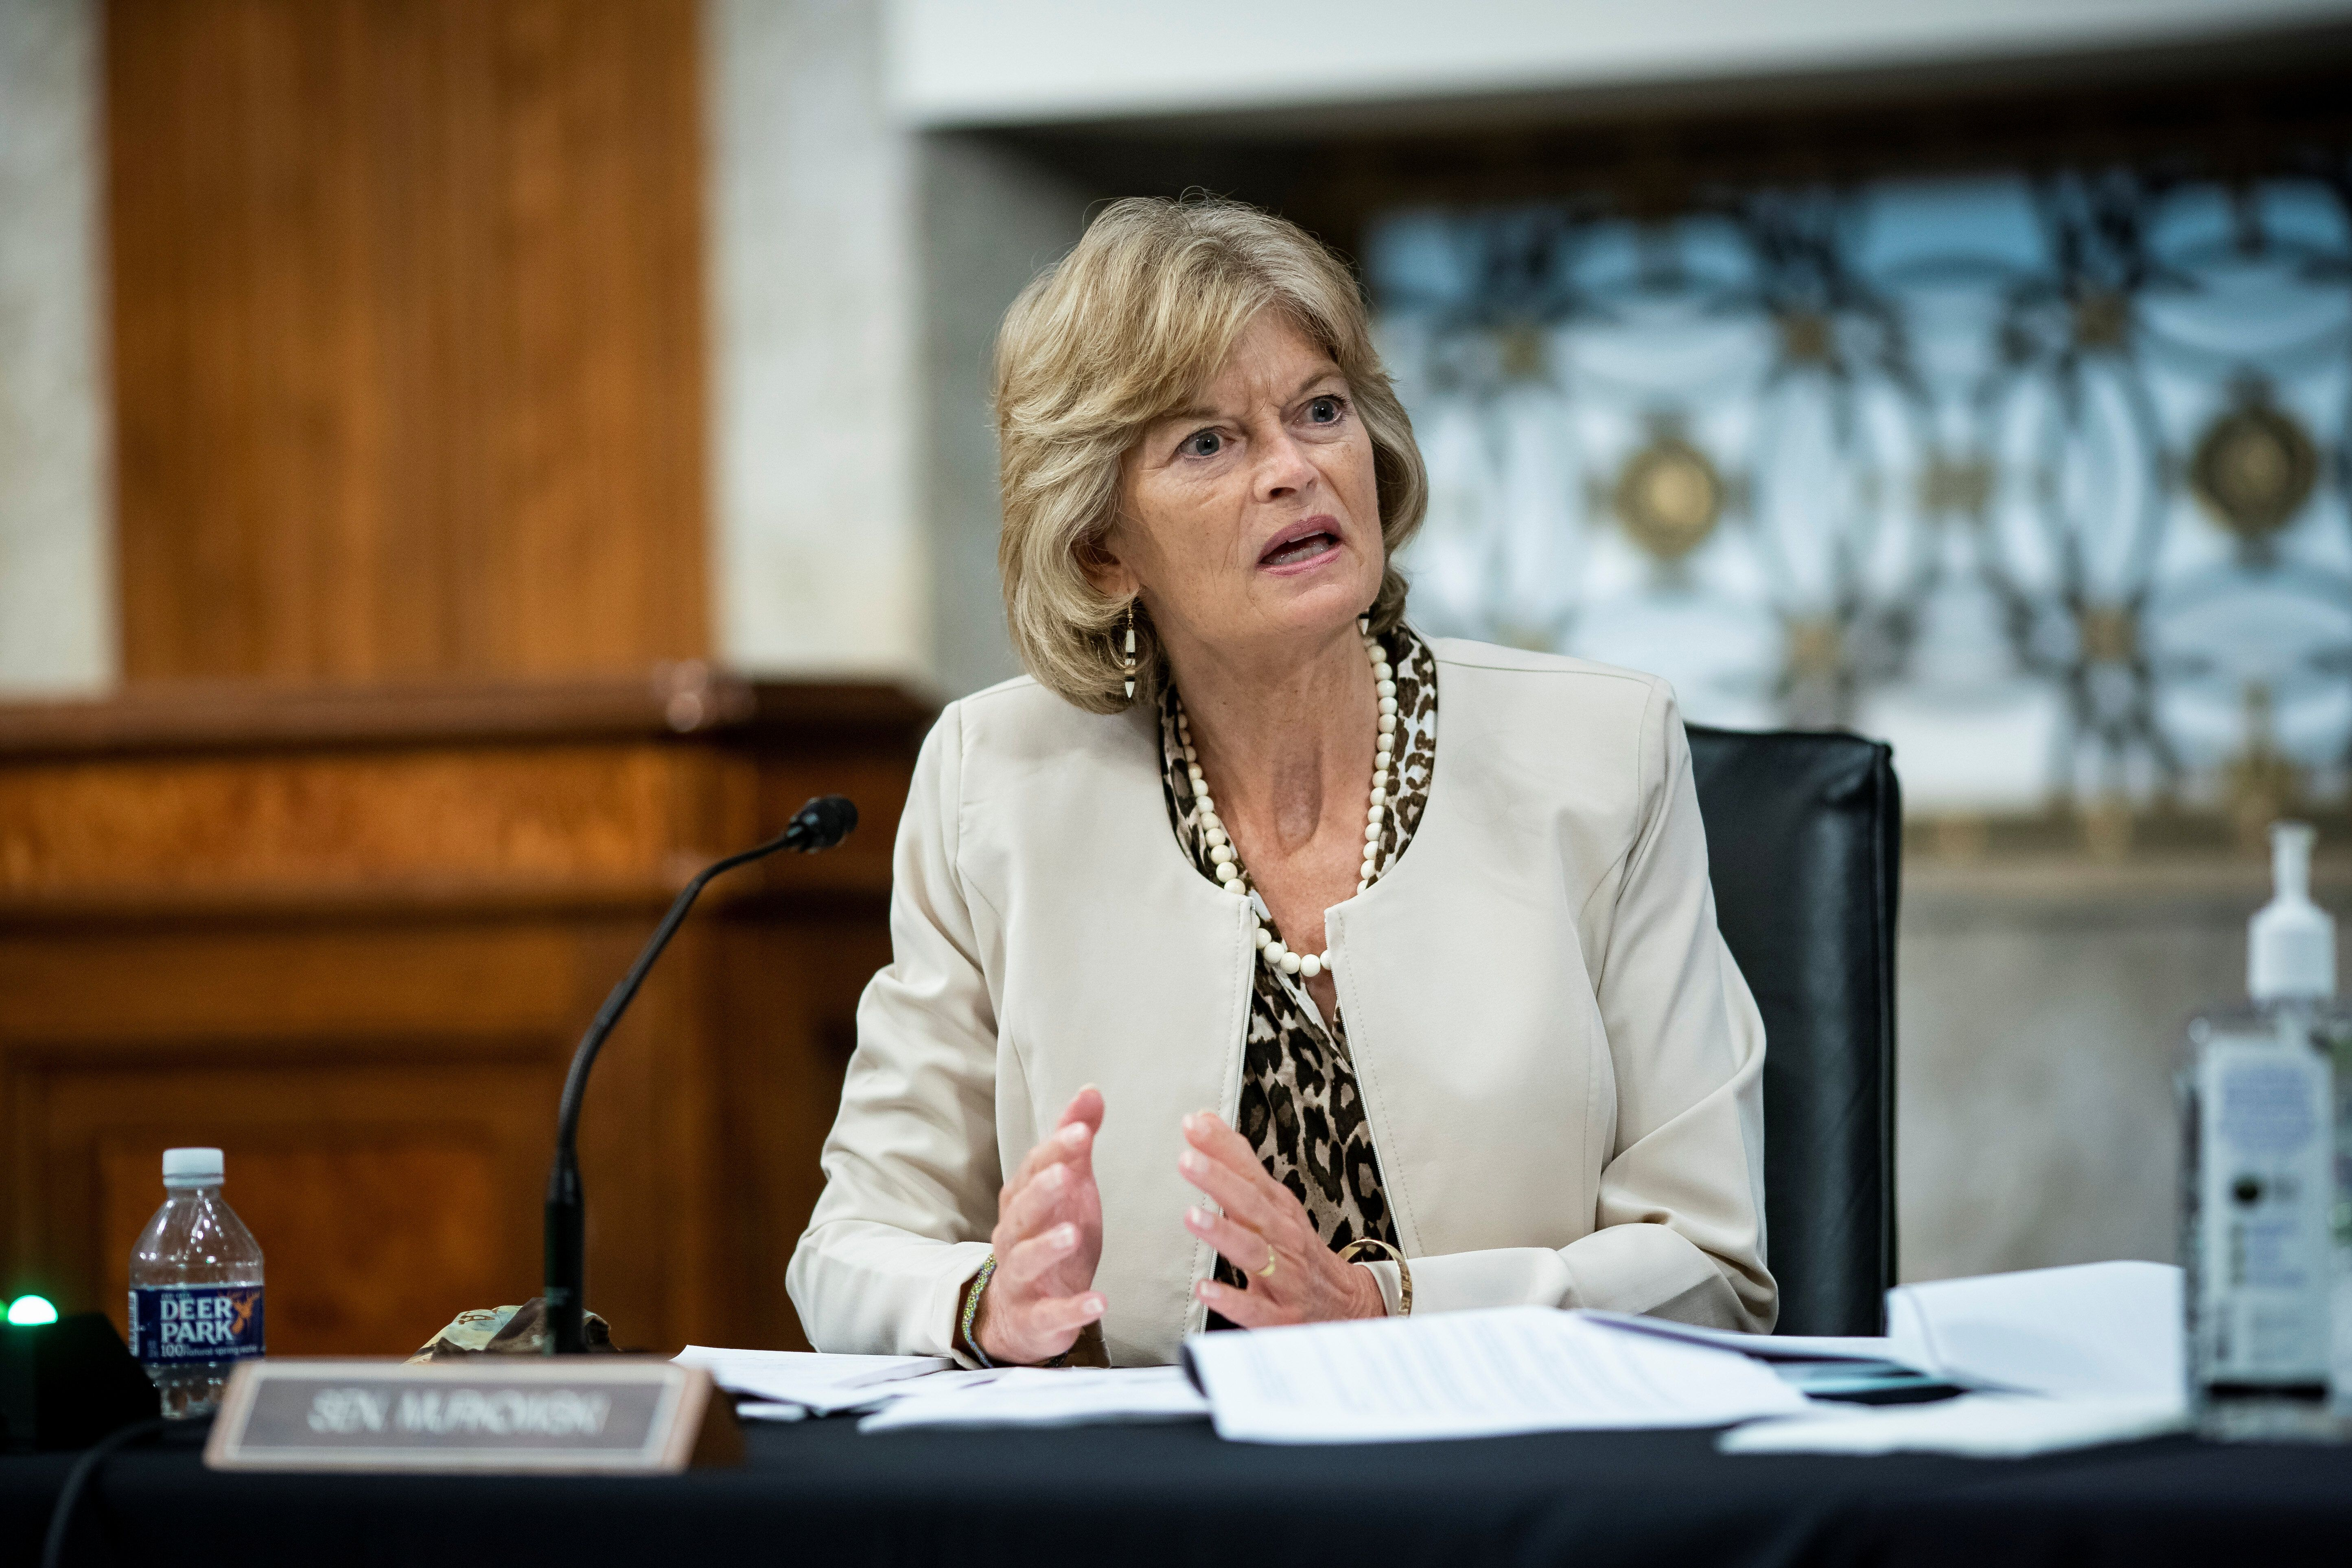 Sen. Lisa Murkowski of Alaska is one of few Republicans urging the Census Bureau to reverse its decision to stop 2020 census